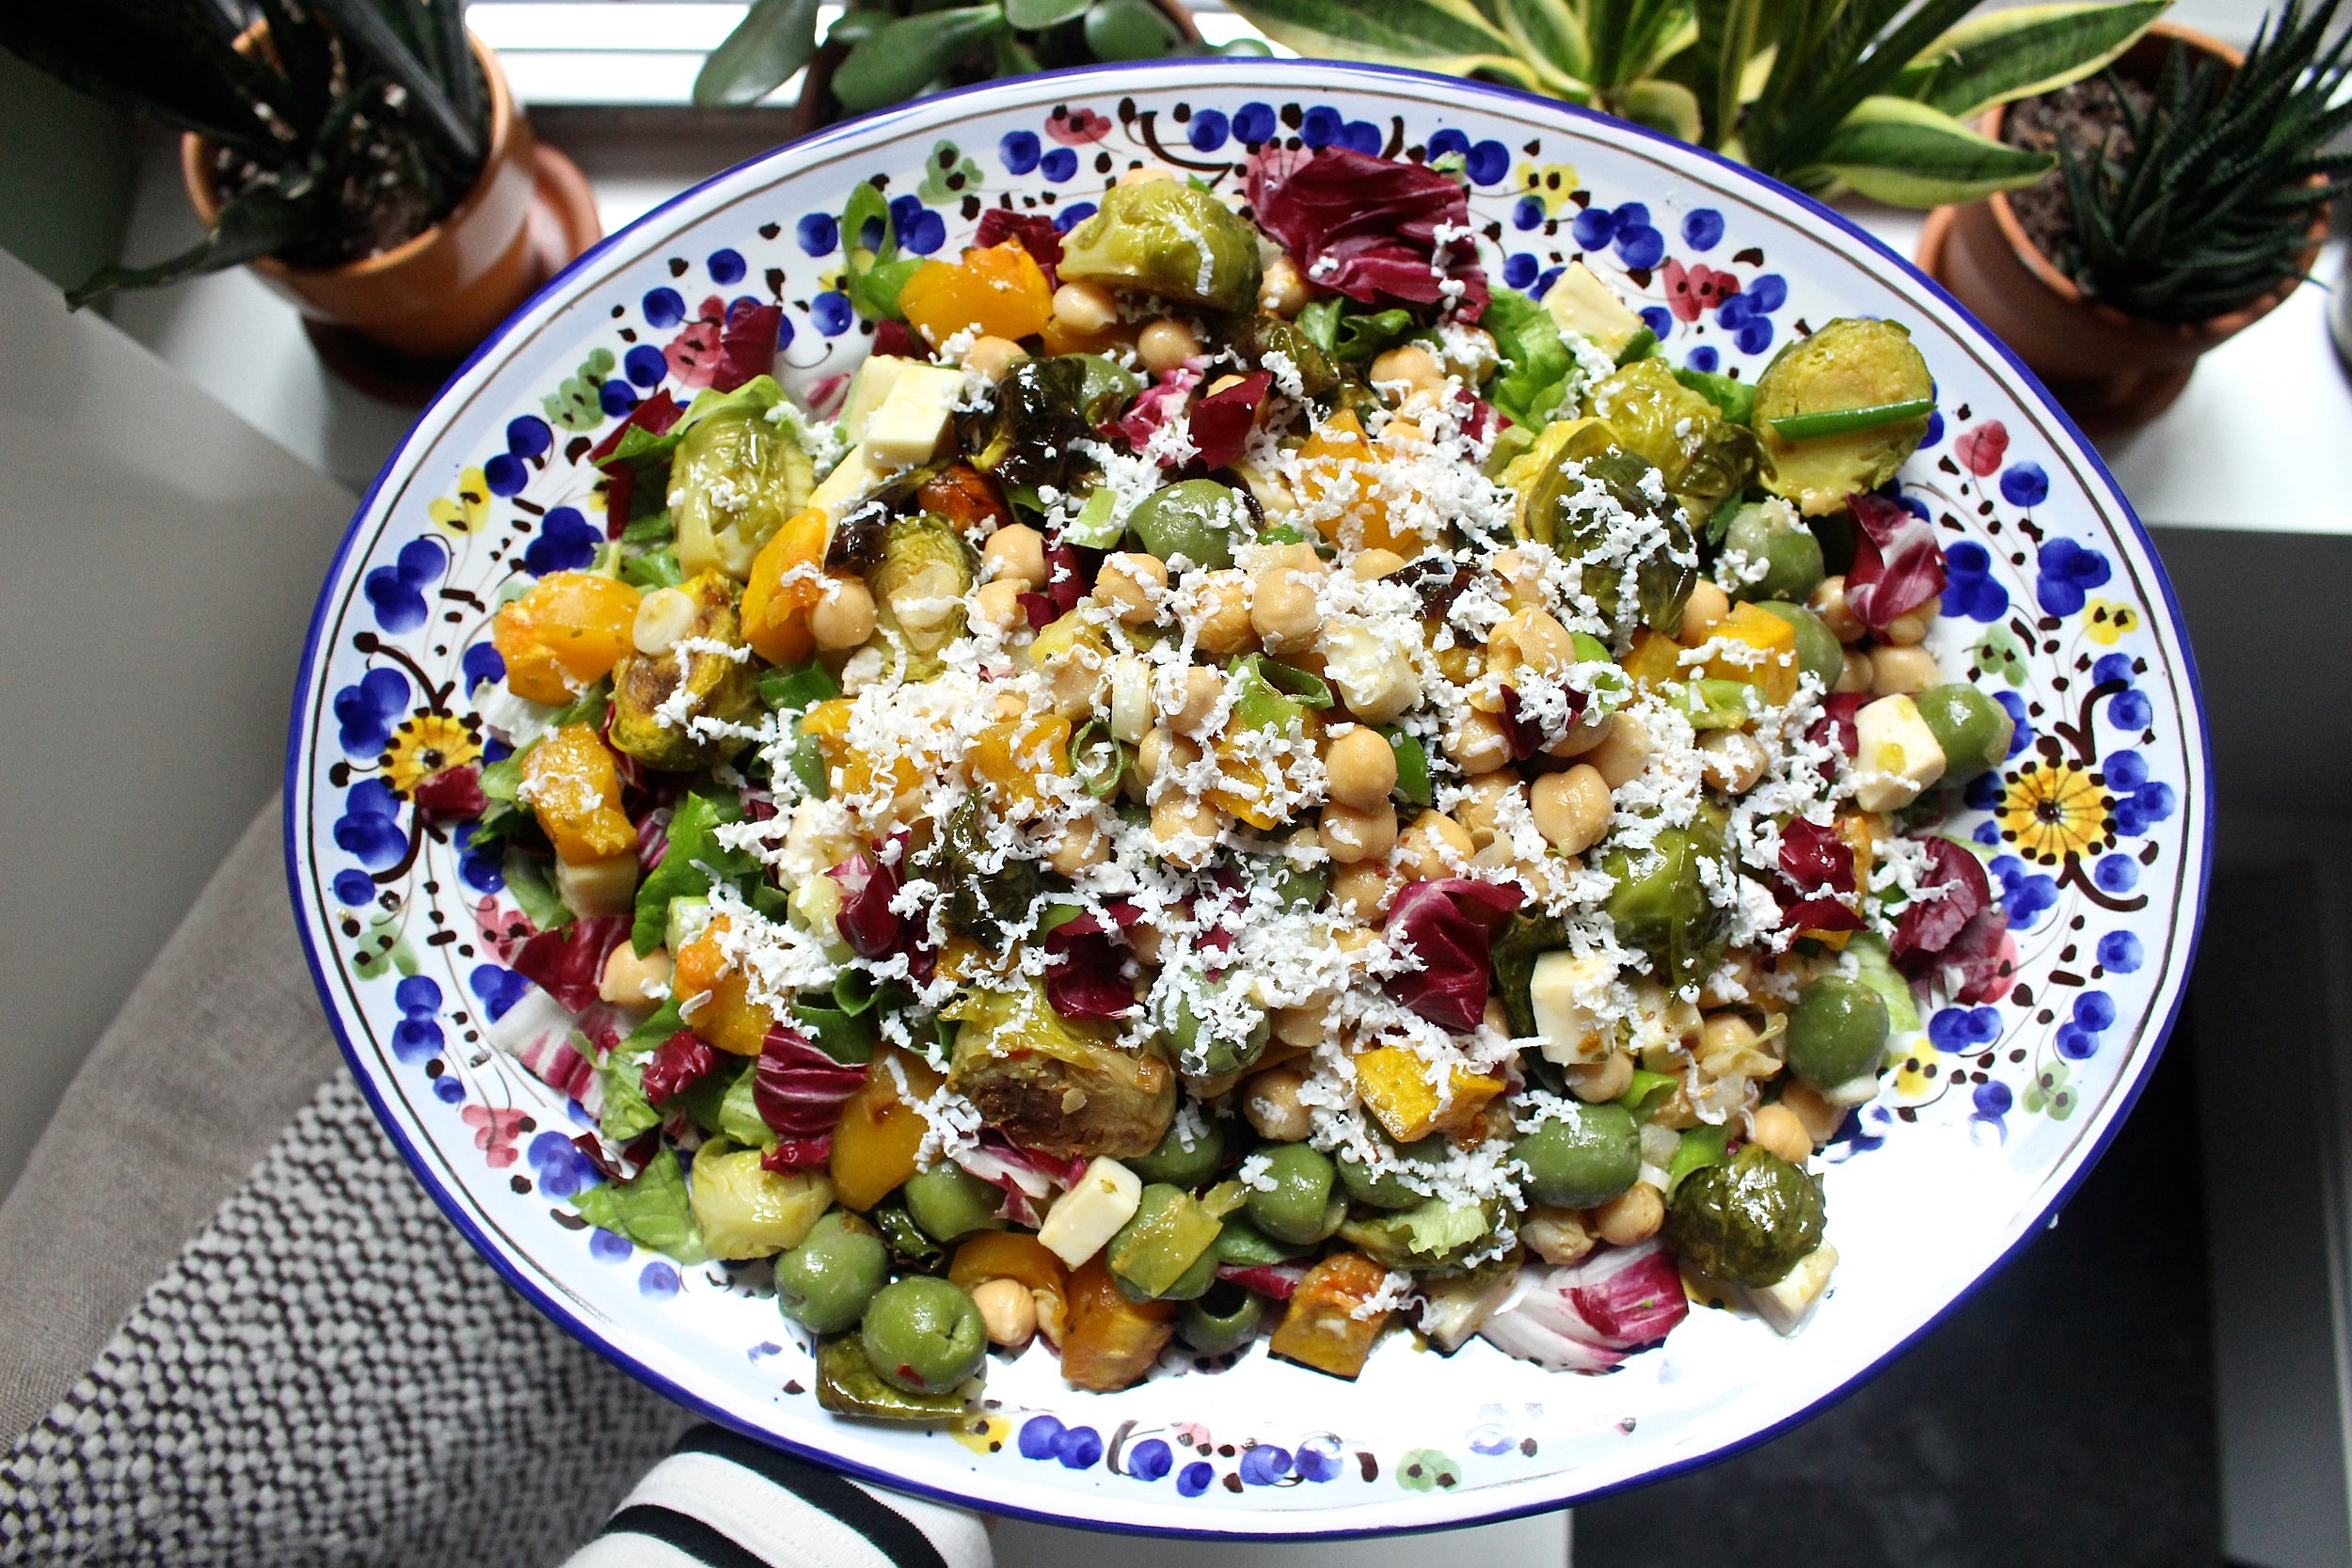 The simplified version of the Che Fico chopped salad